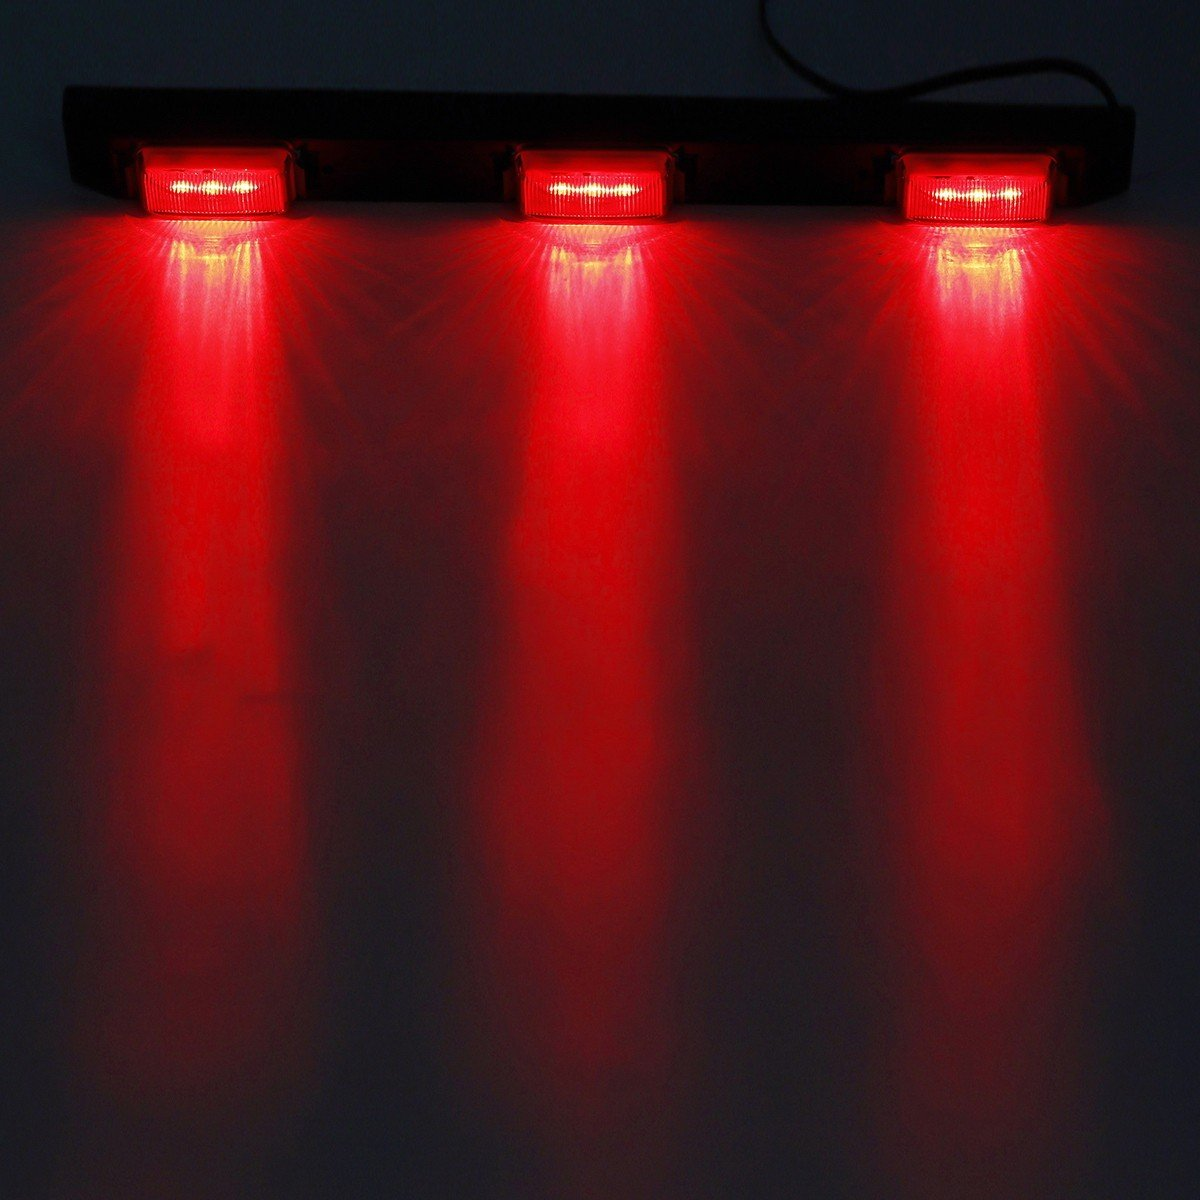 Smoked Dually Bed Front Rear Side Fender Marker Lights Lamps Partsam Led Marker Lights kit Replacement for Chevy and GMC Pickup Trucks Red 3-Lamp 9 LED ID Light Bar